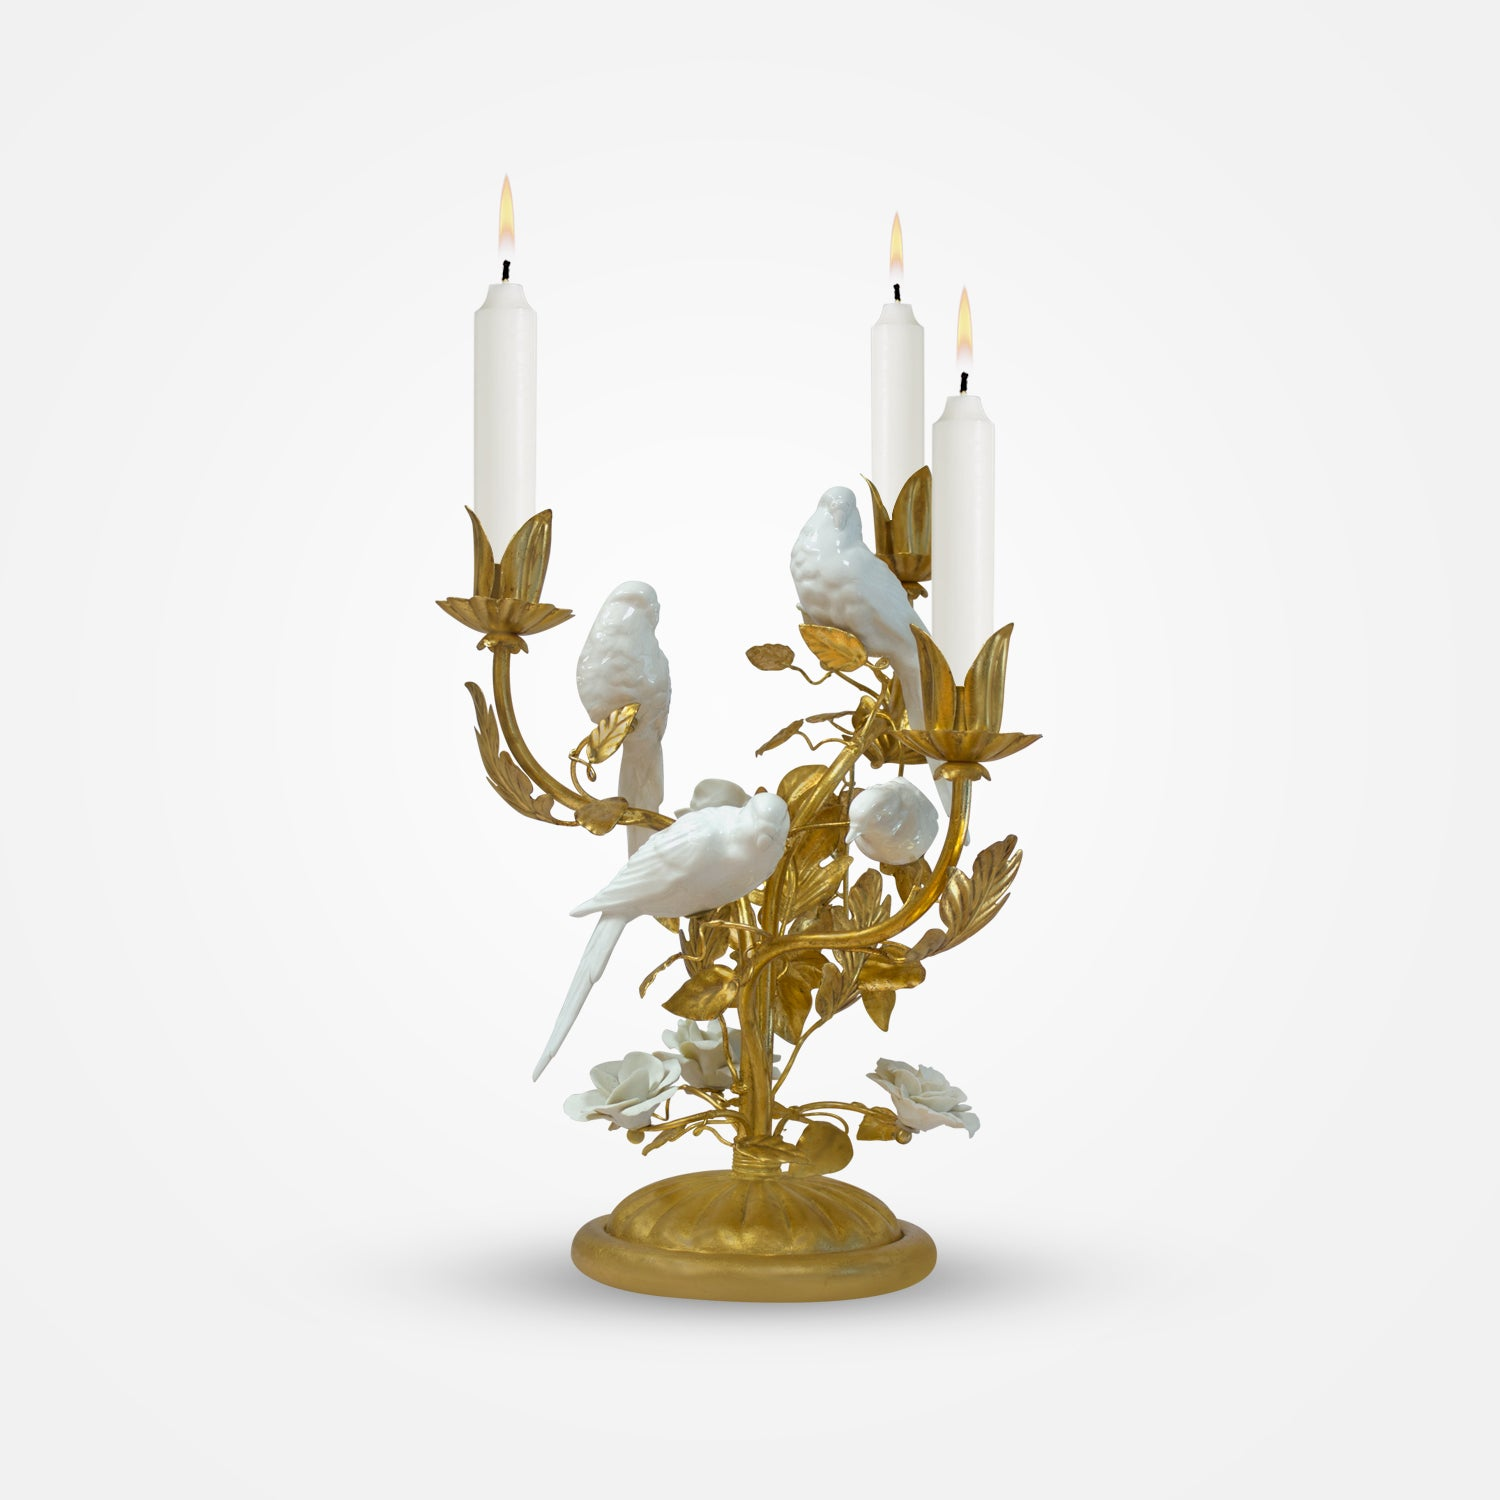 Birds & Flowers Ceramic 3-Flame Candle Holder by I. Borbone